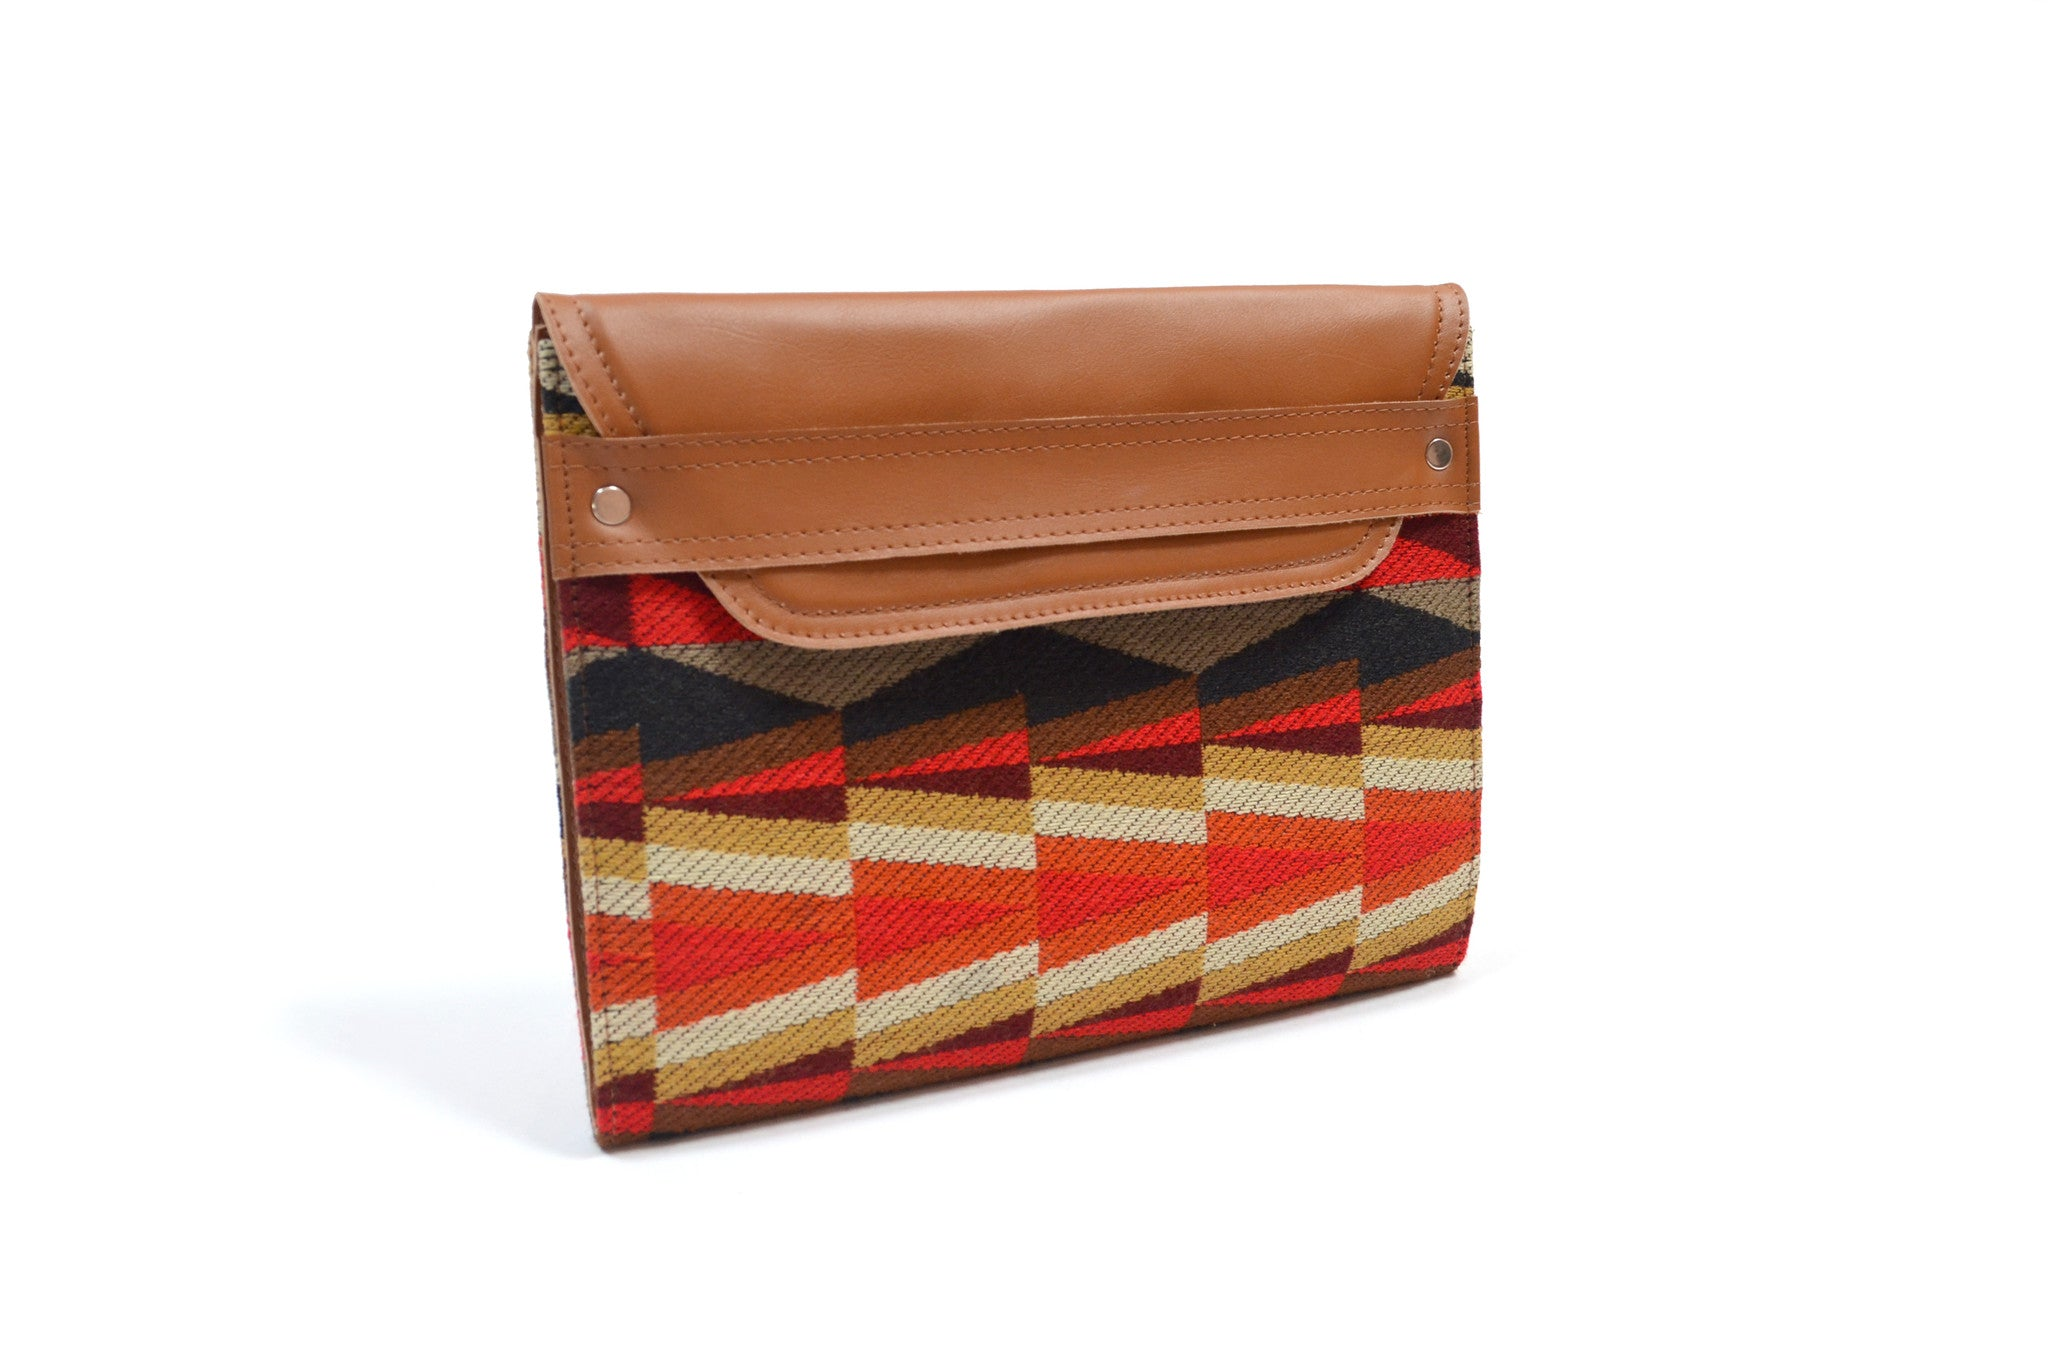 SISAY IPAD SLEEVE - EARTH TONES